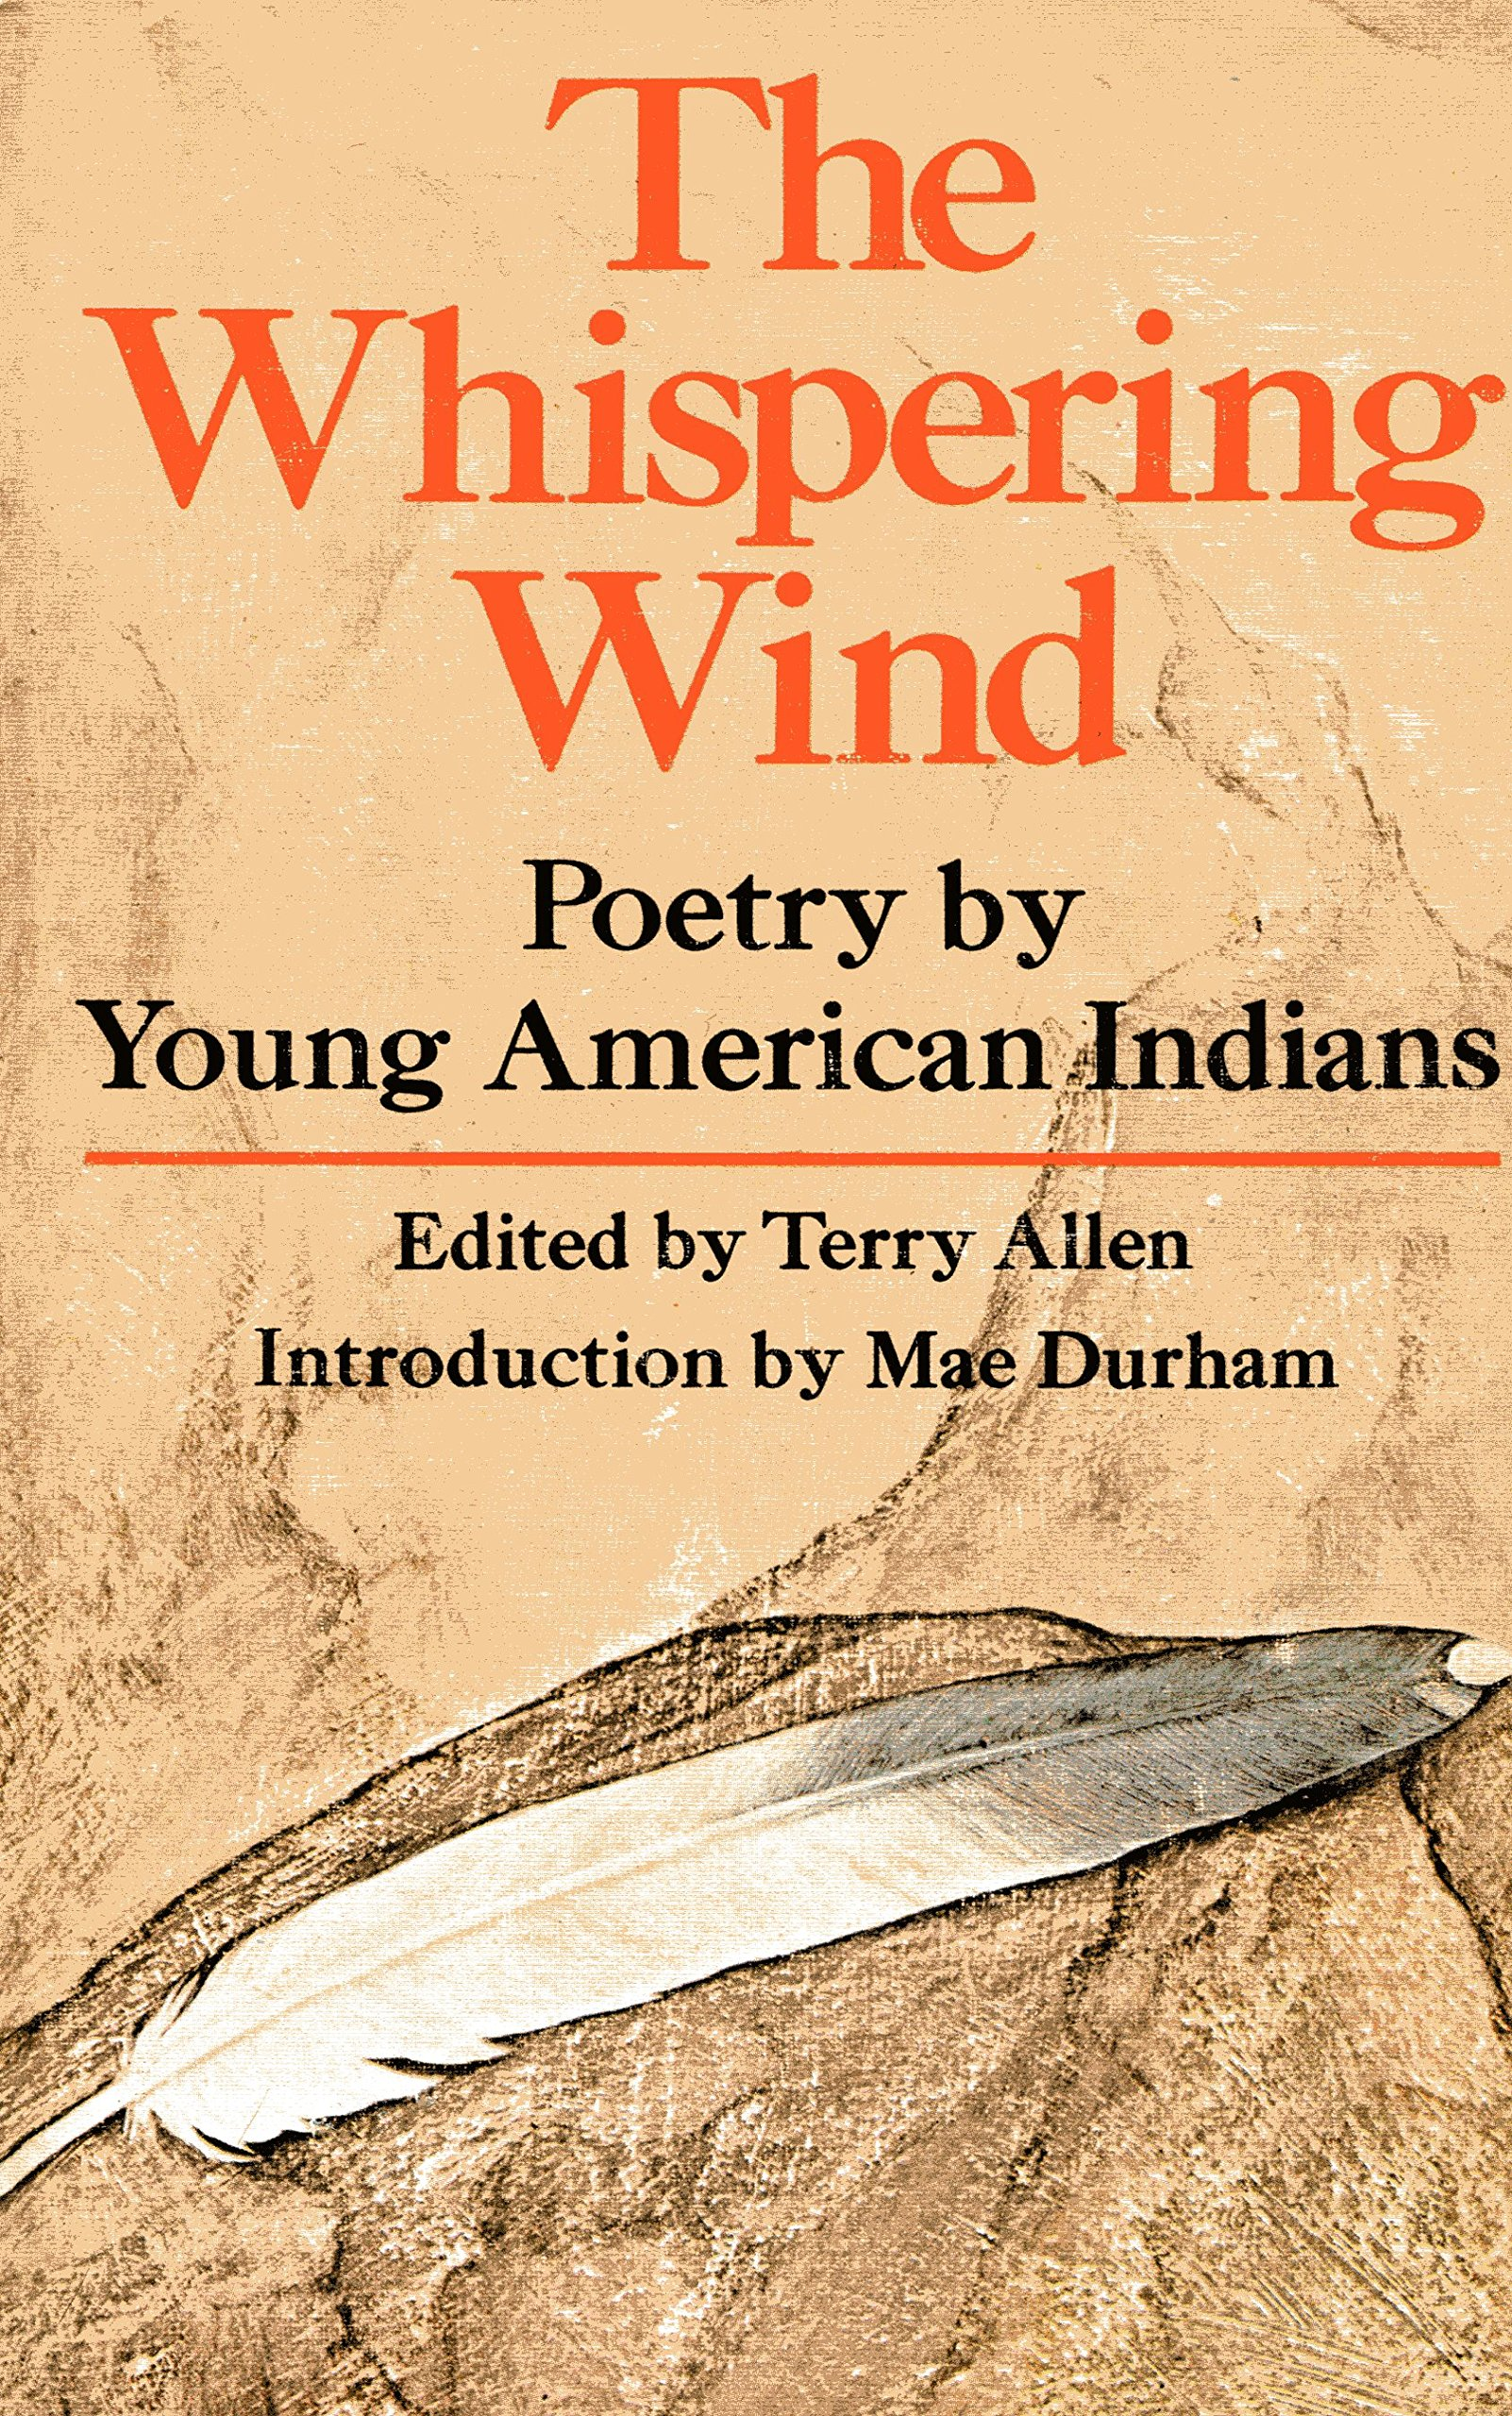 The Whispering Wind, Allen, Terry, editor